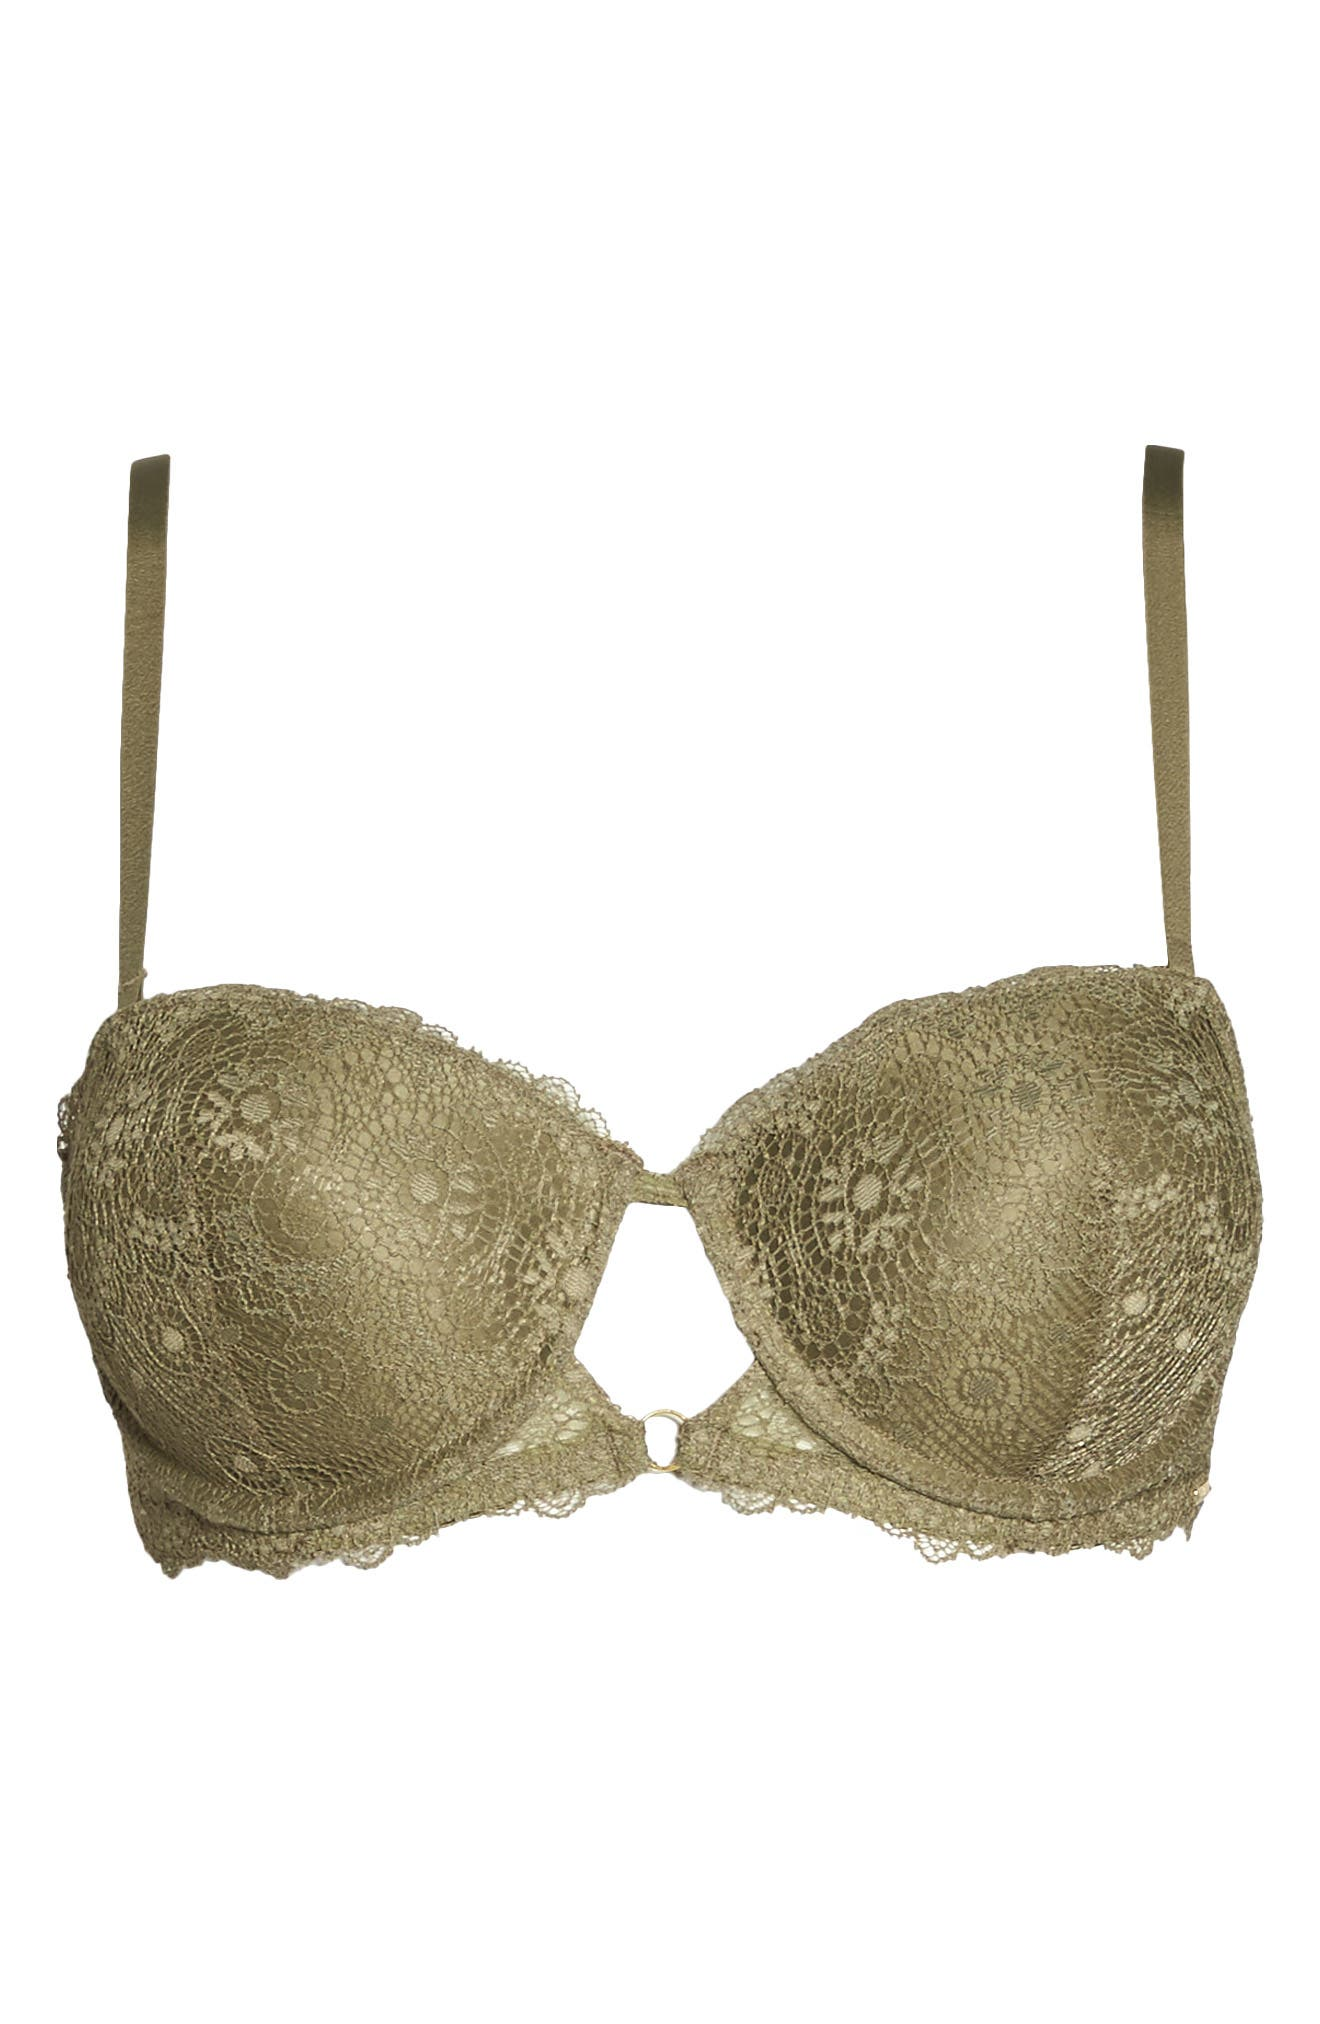 Strapless Underwire Lace Bra,                             Alternate thumbnail 5, color,                             Mermaid